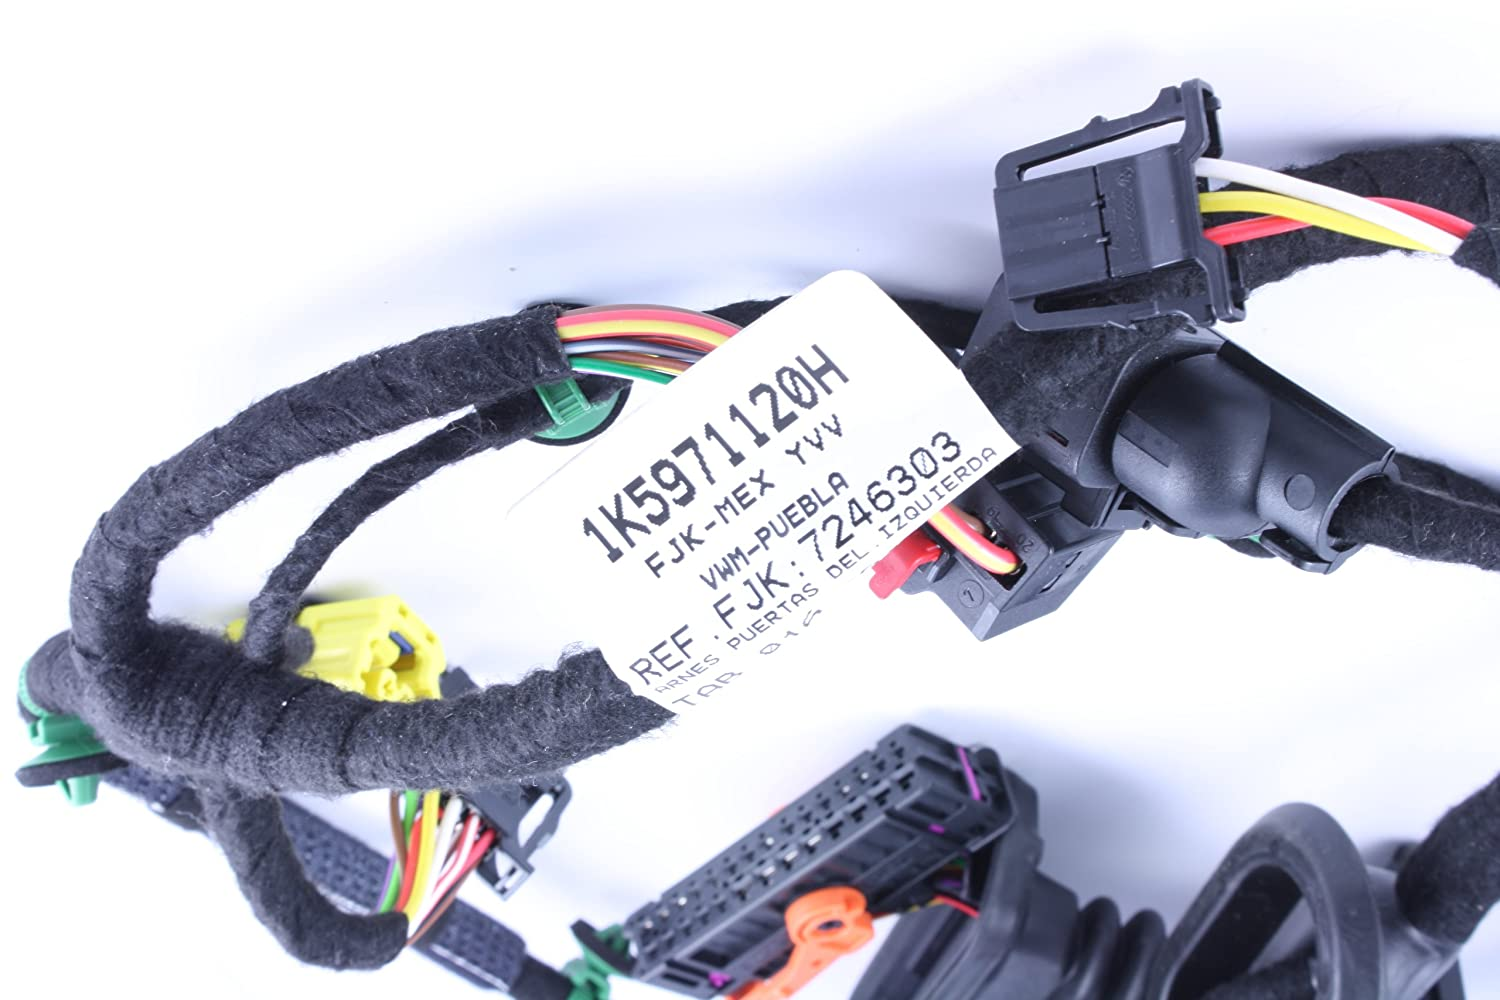 81bTmGhLQAL._SL1500_ amazon com genuine volkswagen drivers side door harness 1k5 971 2006 jetta door wiring harness at bayanpartner.co